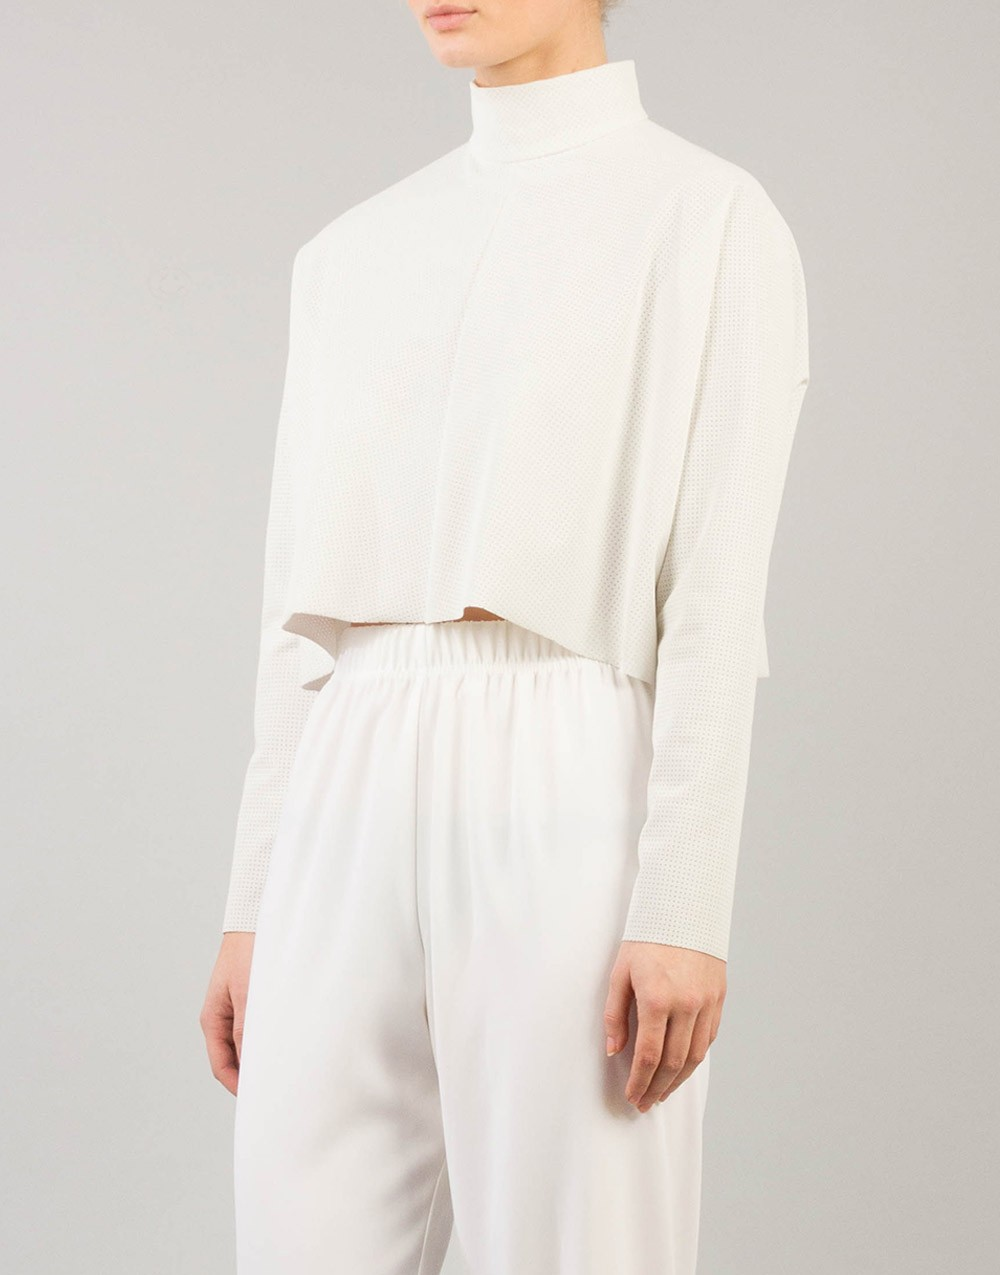 FoA. Avy Top White